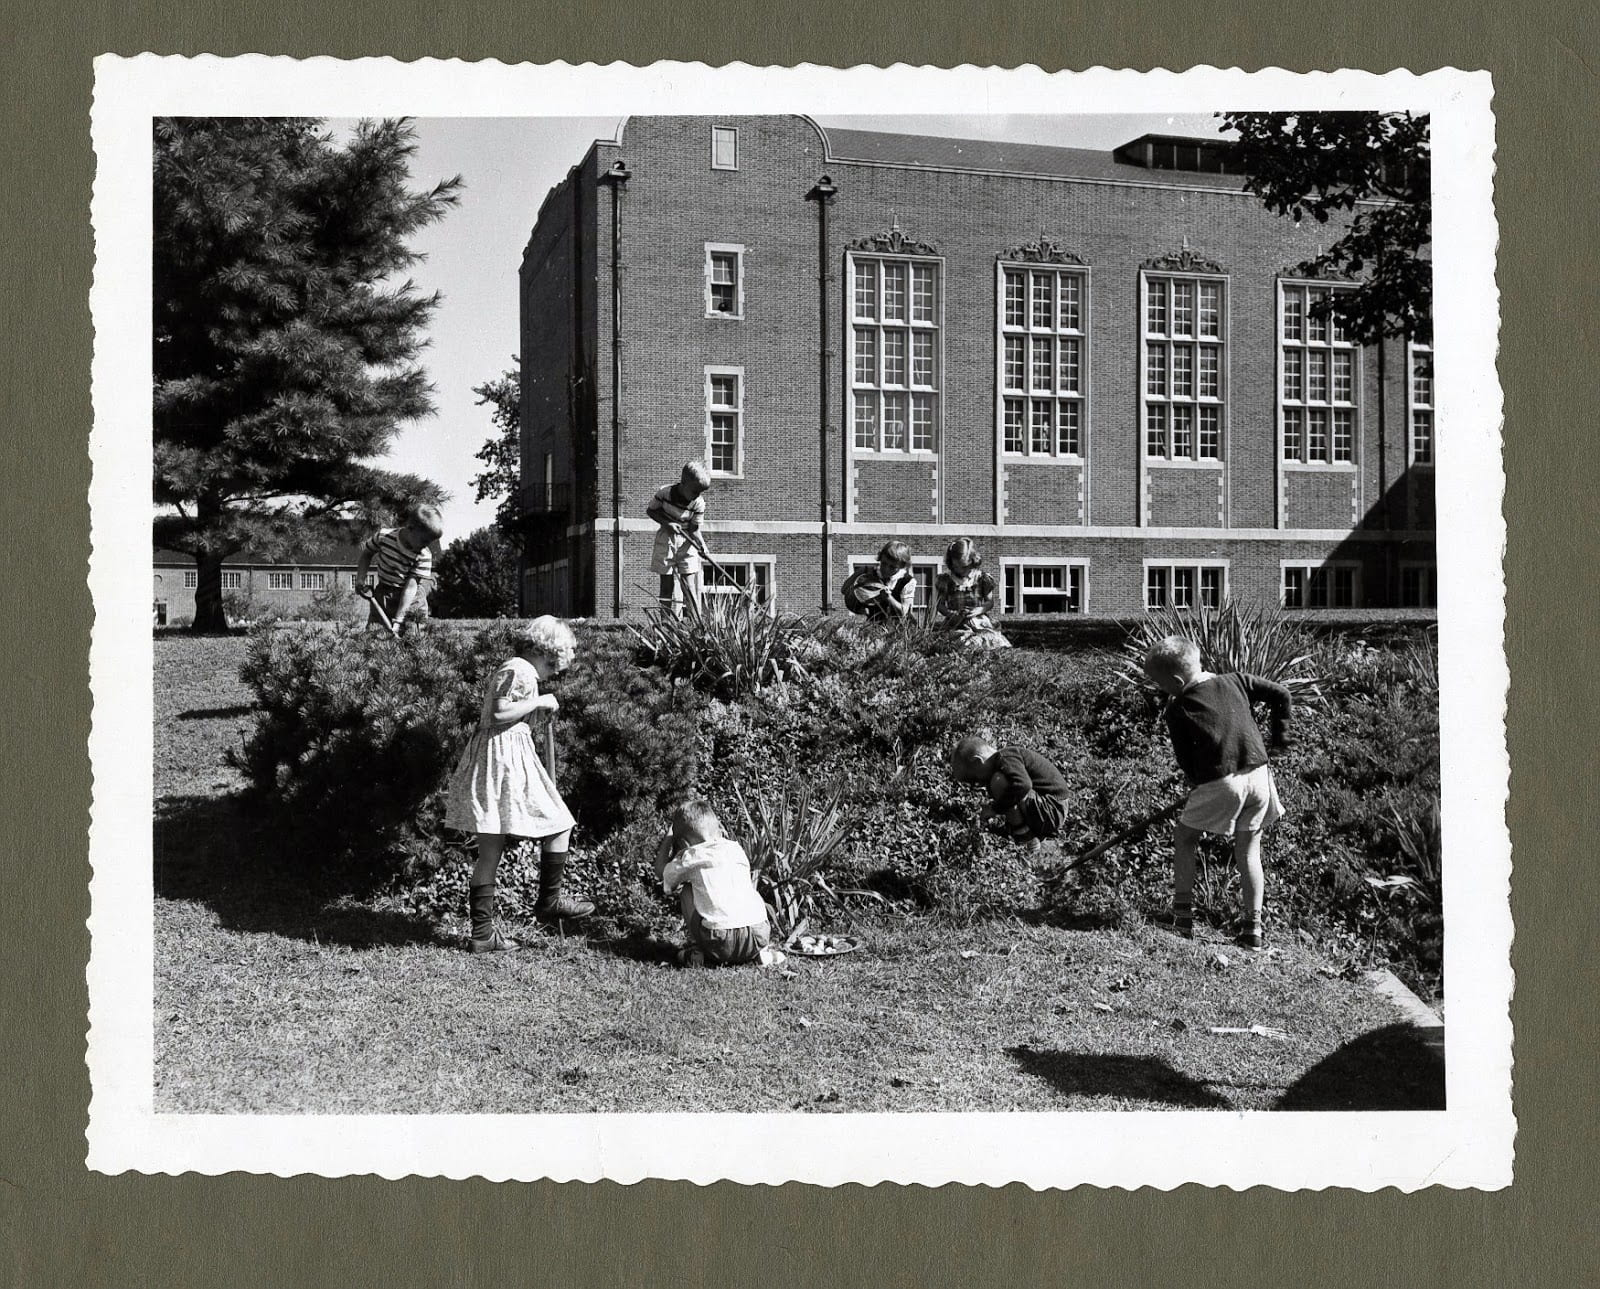 Students working in the garden on the southwest side of Stephens Hall, circa 1940s